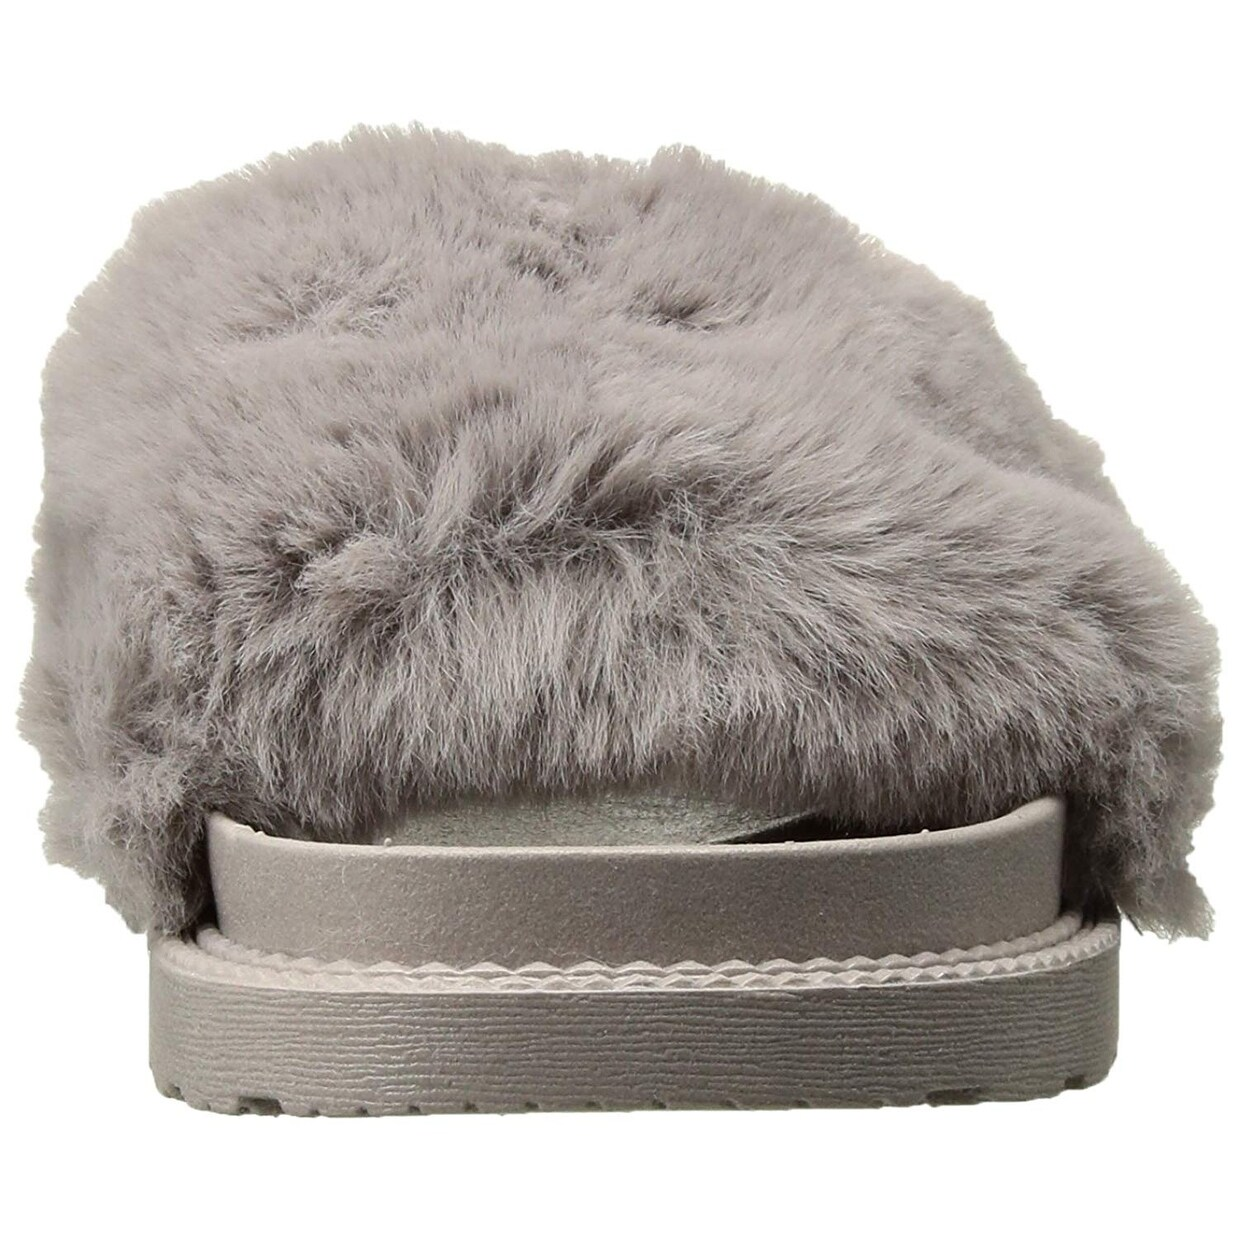 570498719a92 Shop Sam Edelman Womens Blaire Faux Fur Open Toe Casual Slide Sandals -  Free Shipping On Orders Over  45 - Overstock - 20504521